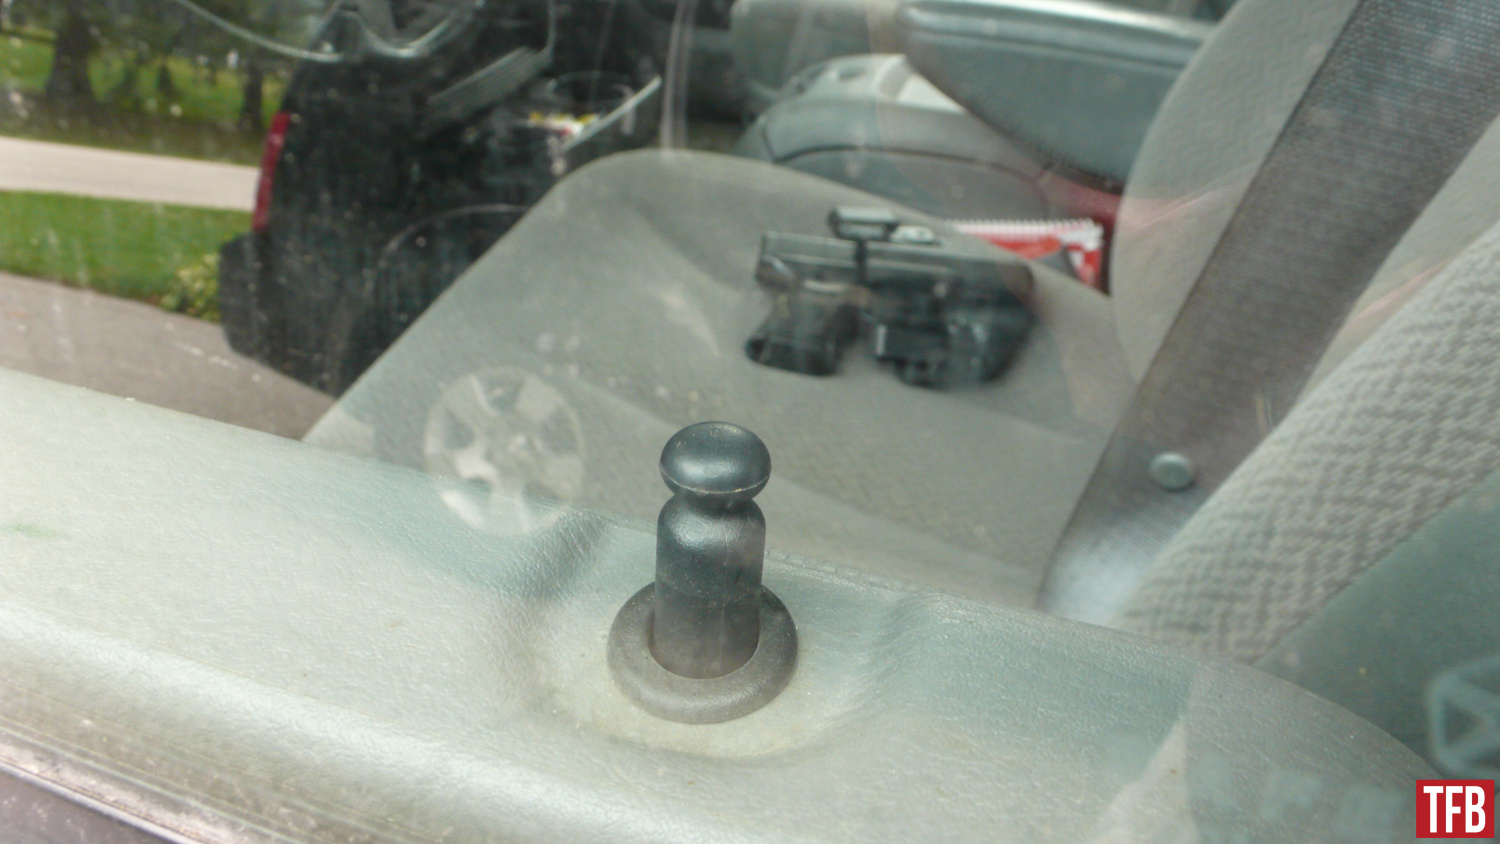 gun thefts from vehicles: lock your cars